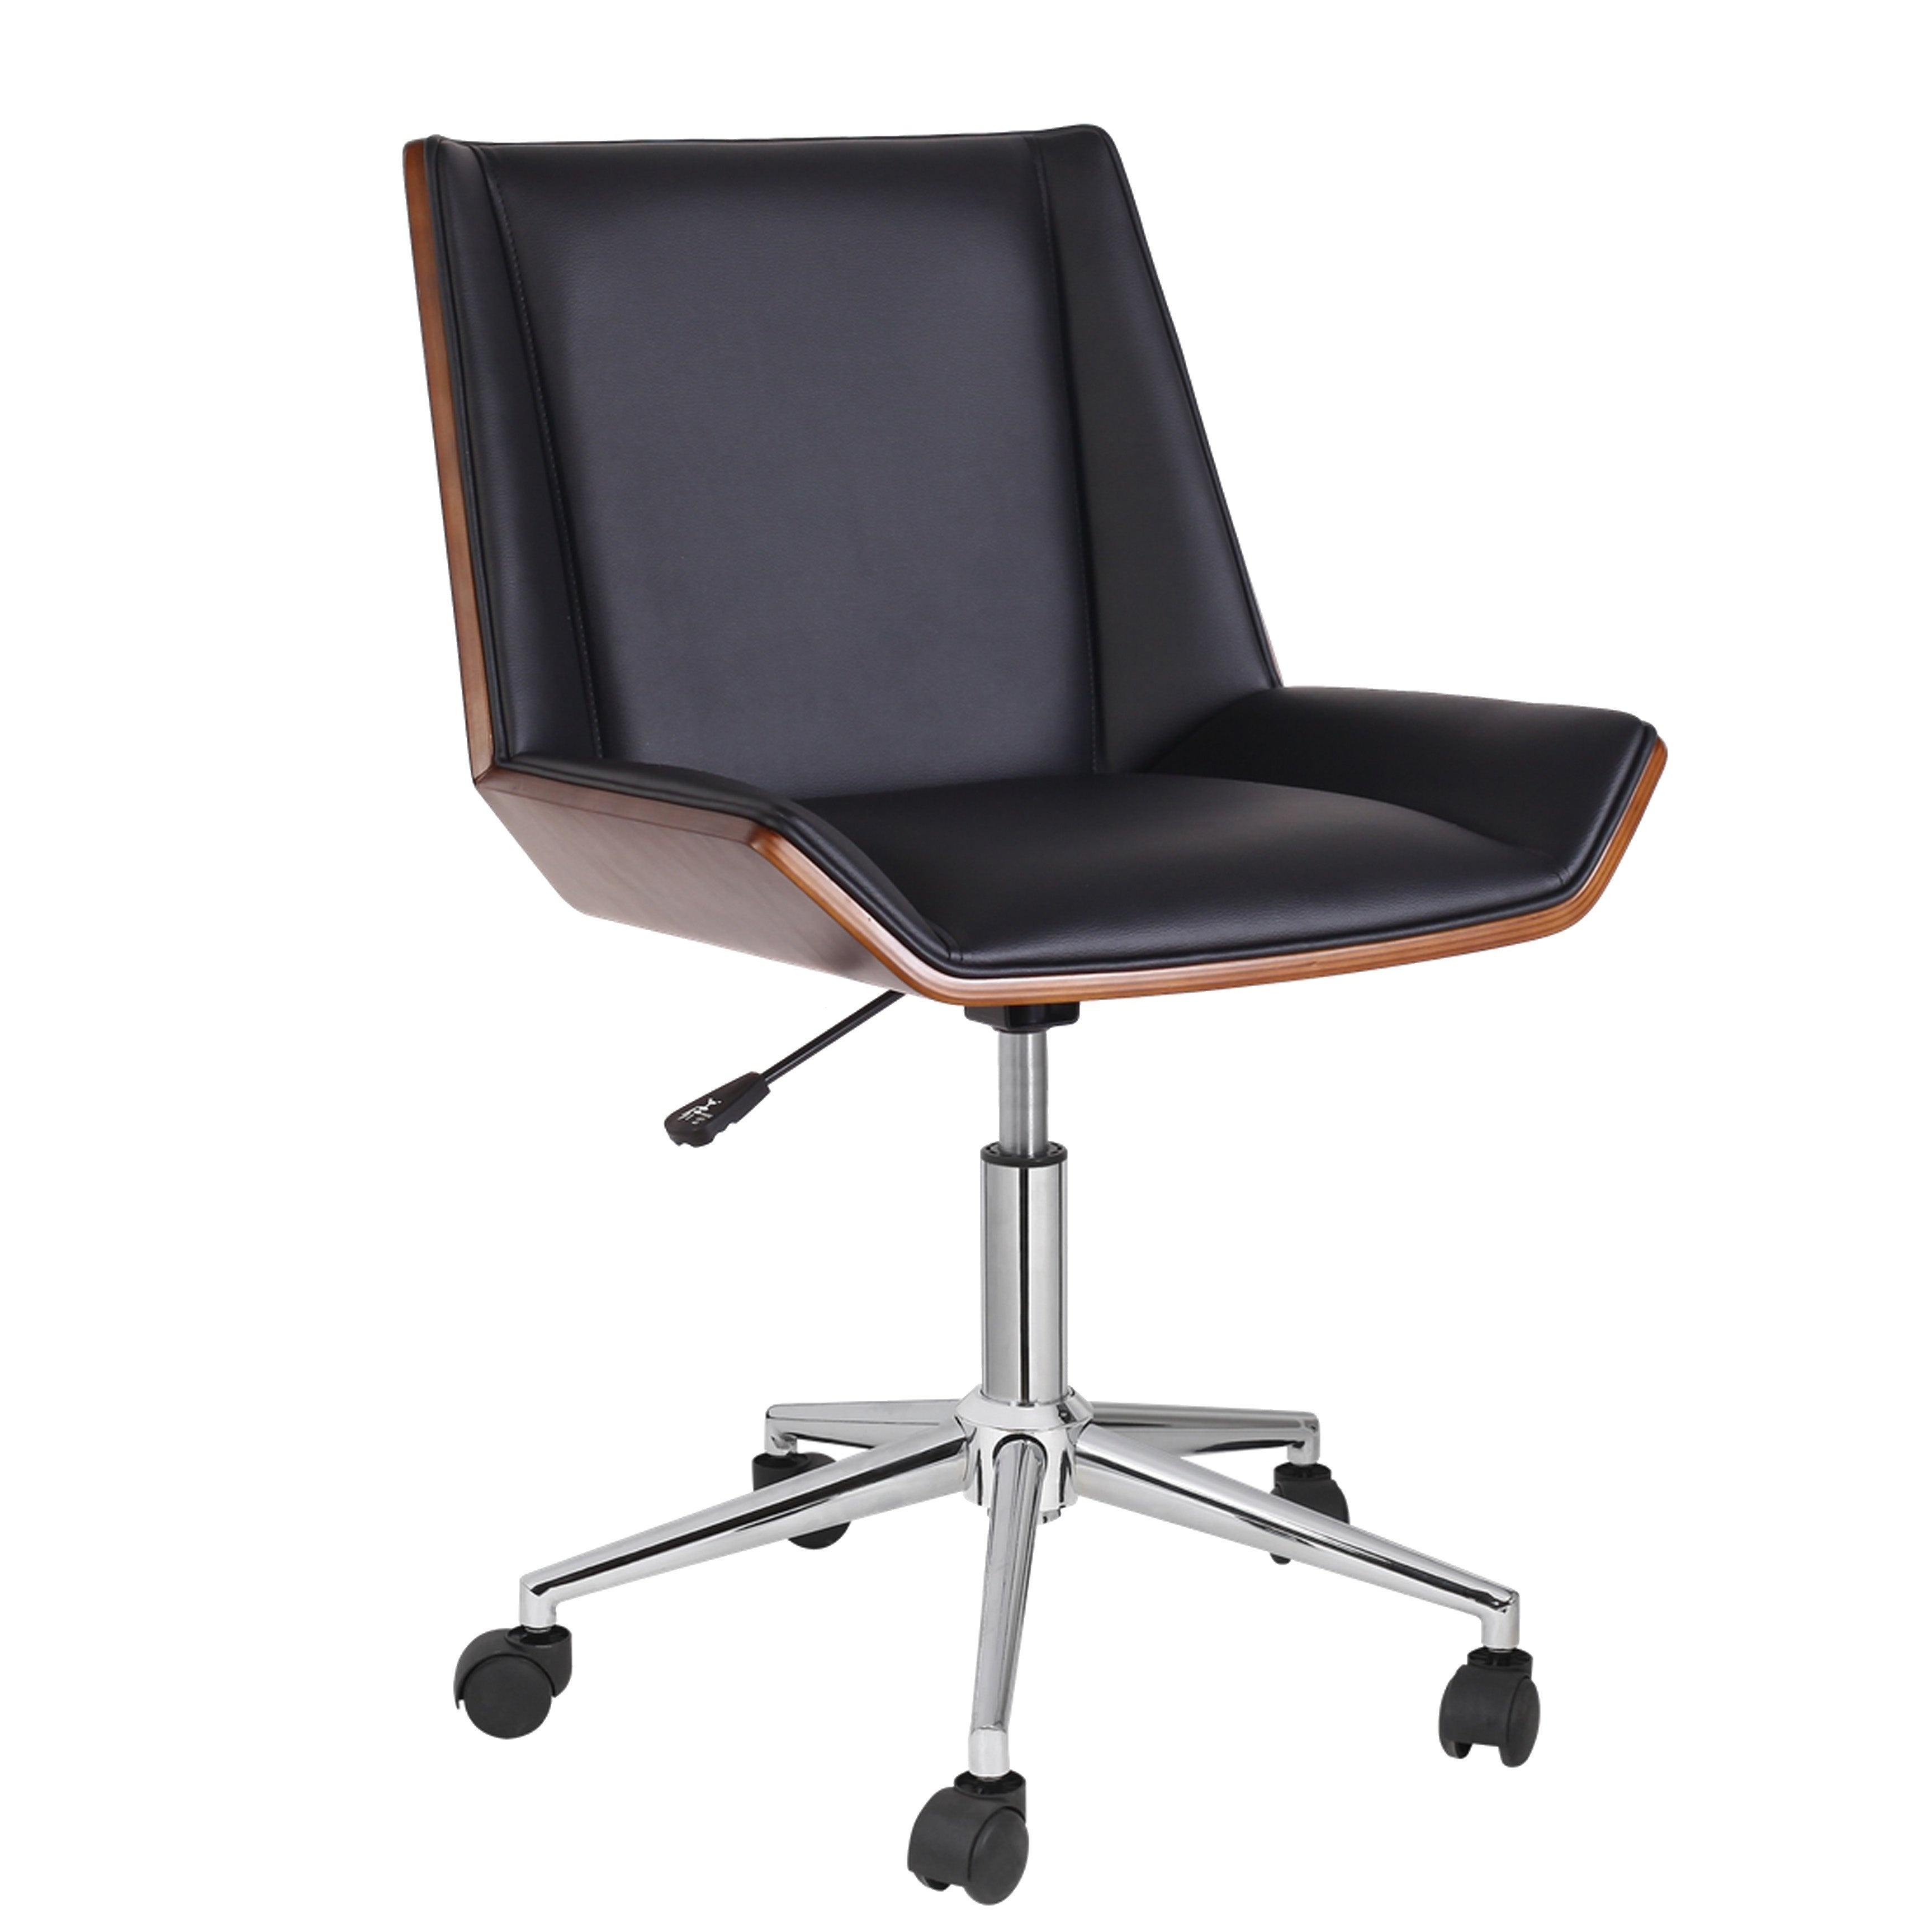 pvc home office chair. Porthos Home Office Chair With PVC Upholstery And Adjustable Height - Free Shipping Today Overstock.com 24366166 Pvc